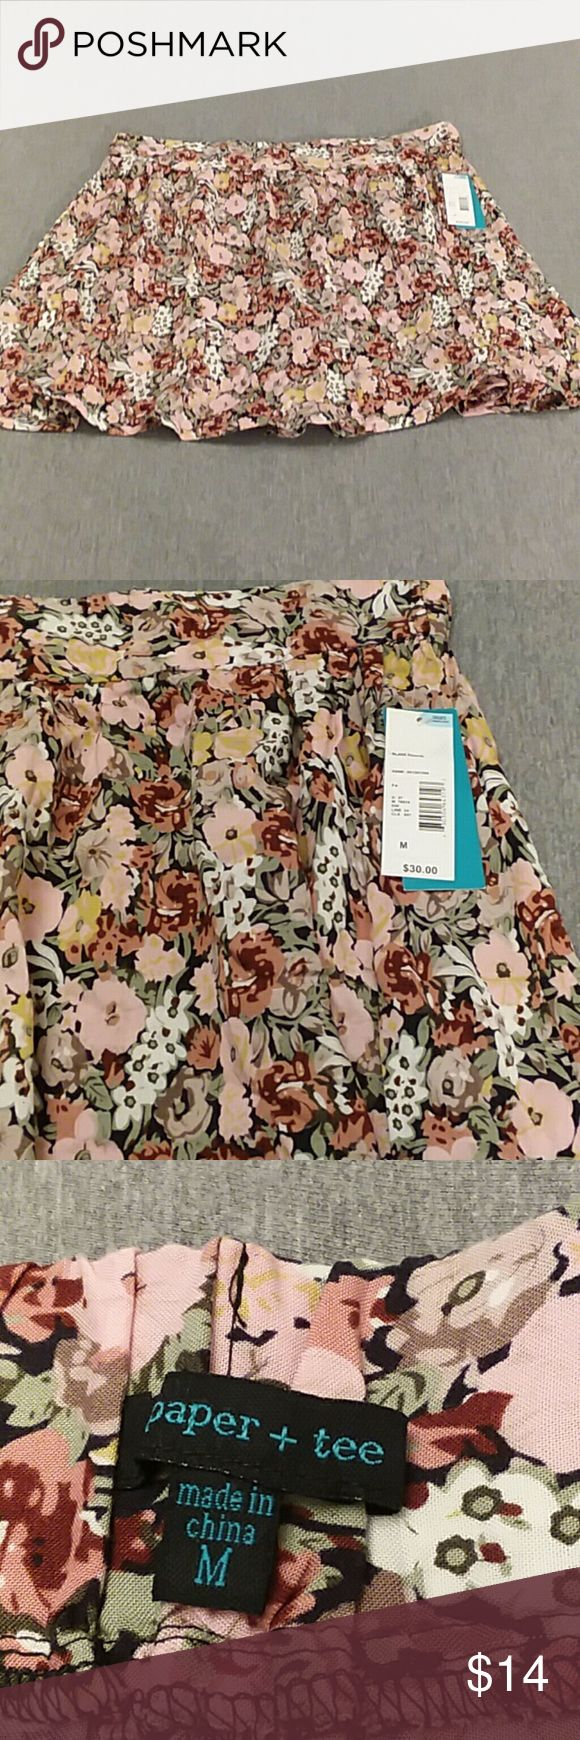 NWT PAPER + TEE Women's Floral Skirt medium NWT women's Paper + Tee beautiful medium floral skirt, elastic back waist band, pull on, flair skirt.  Colors of pinks, black, white, greens.  Clean, smoke free home. Paper + Tee Skirts Midi